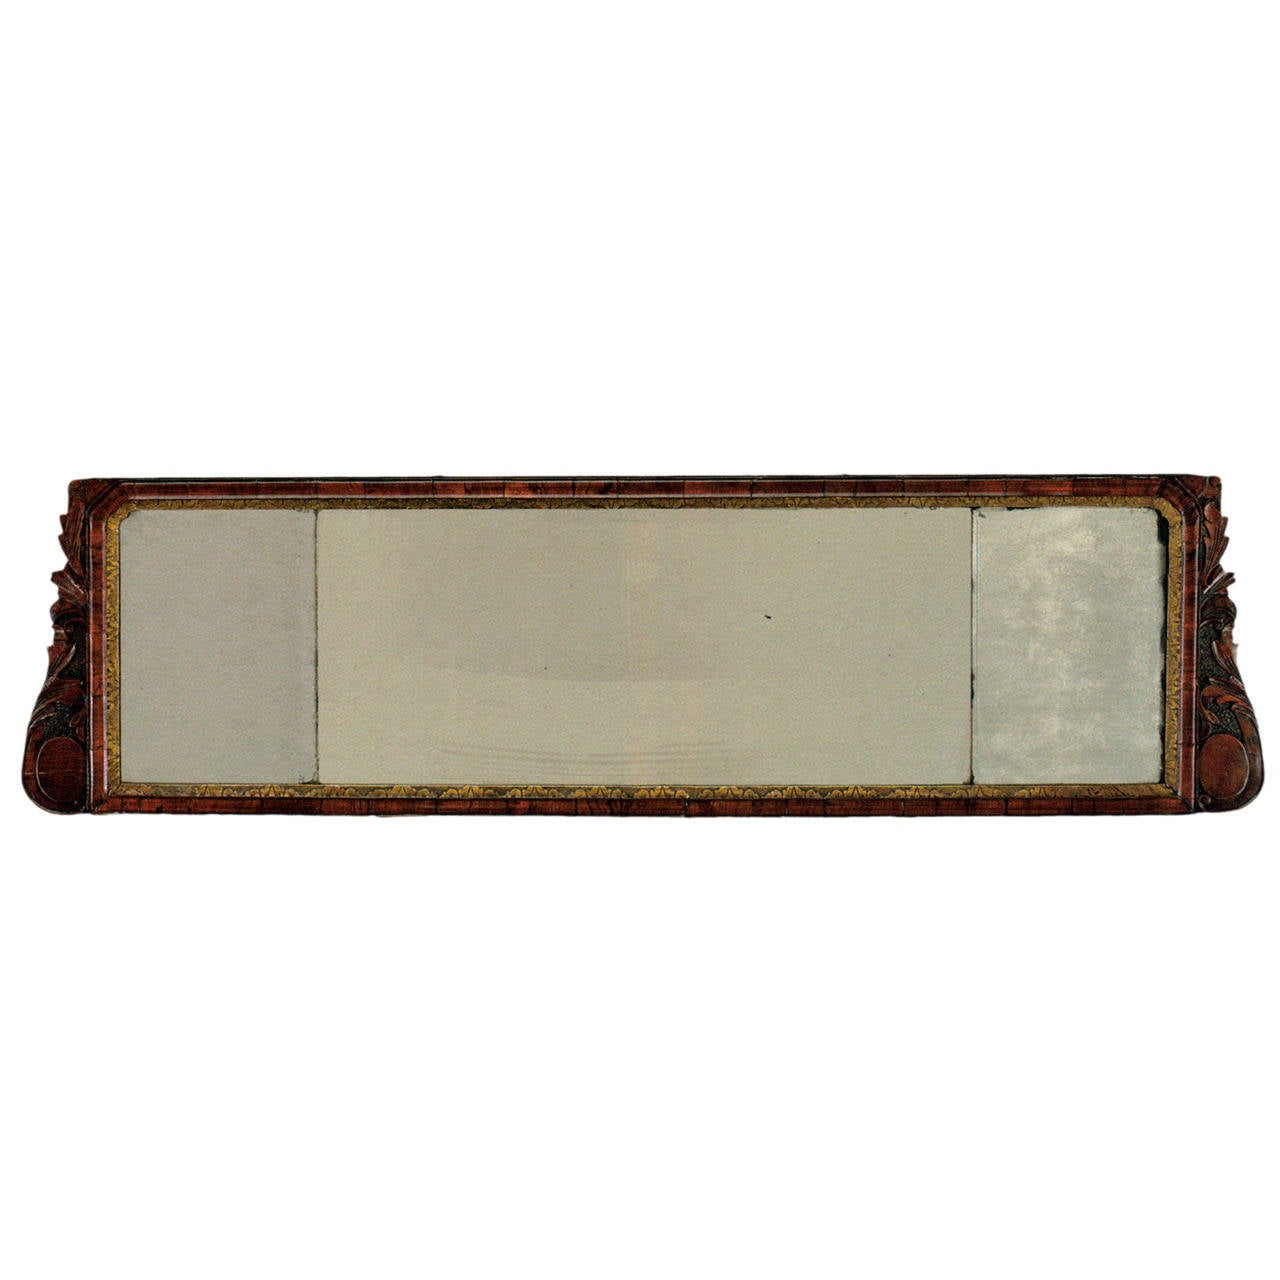 English early 18th century George I Overmantel Mirror